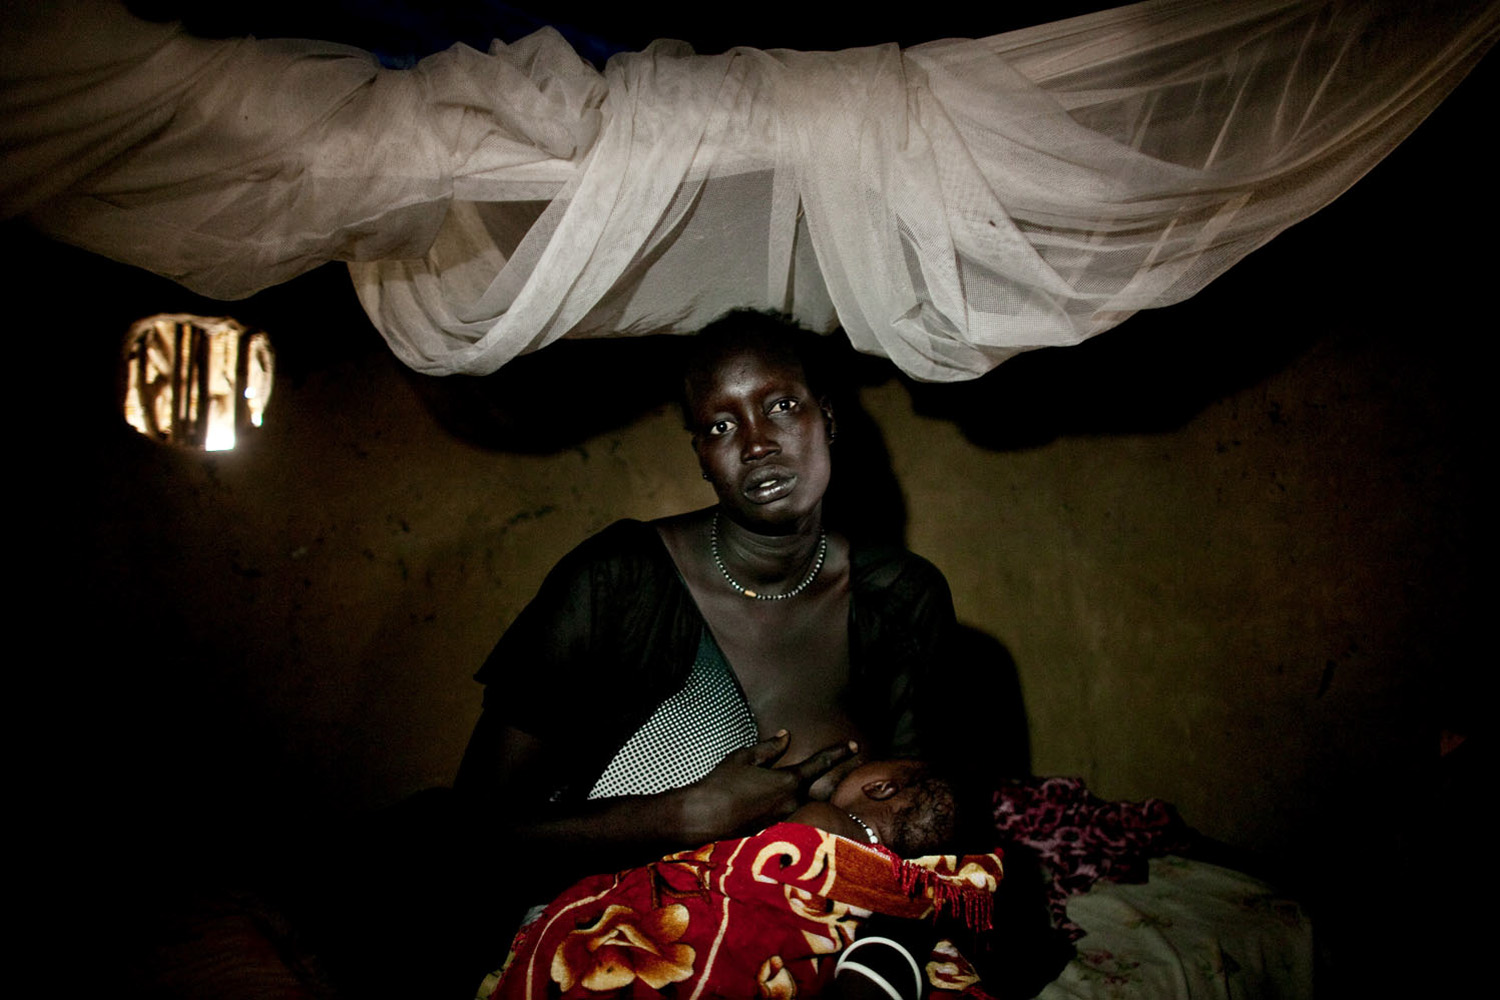 April 7, 2011. A survivor of a recent massacre in Fangak, southern Sudan. The massacre occurred when forces loyal to rebel General George Athor attacked the town of Fangak in February, leaving more than 200 dead.